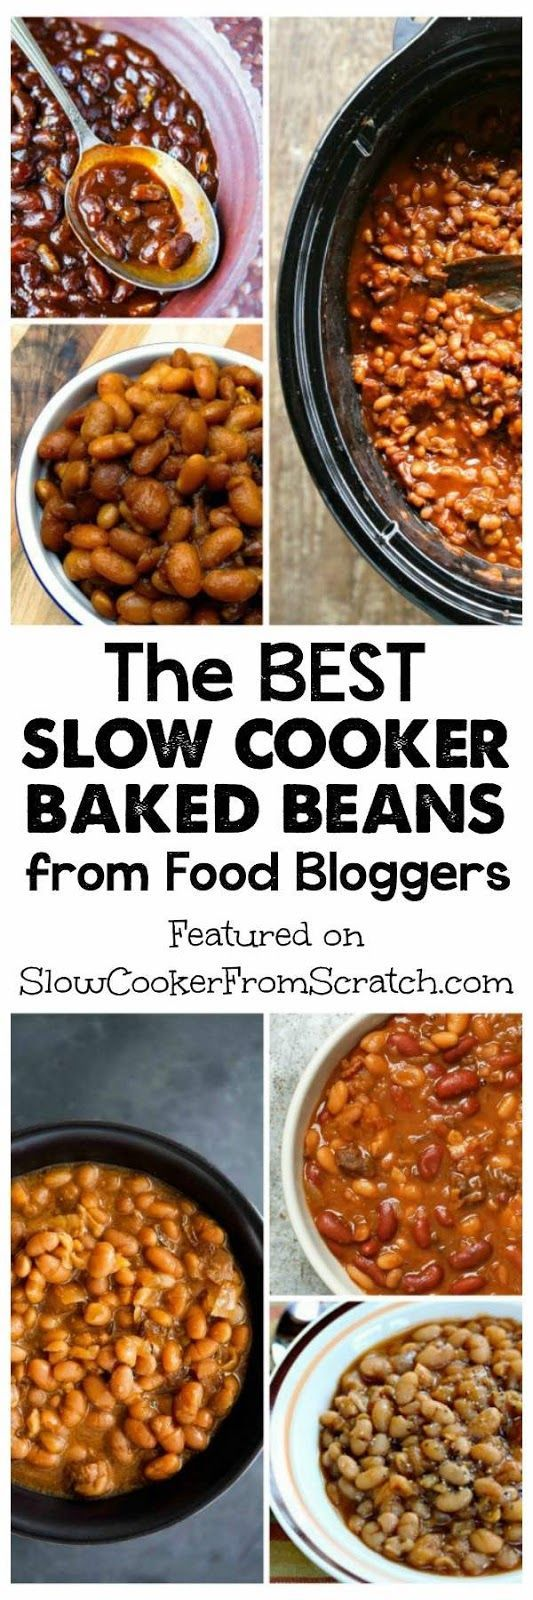 slow cooker baked beans recipes for slow cooker best slow cooker ...